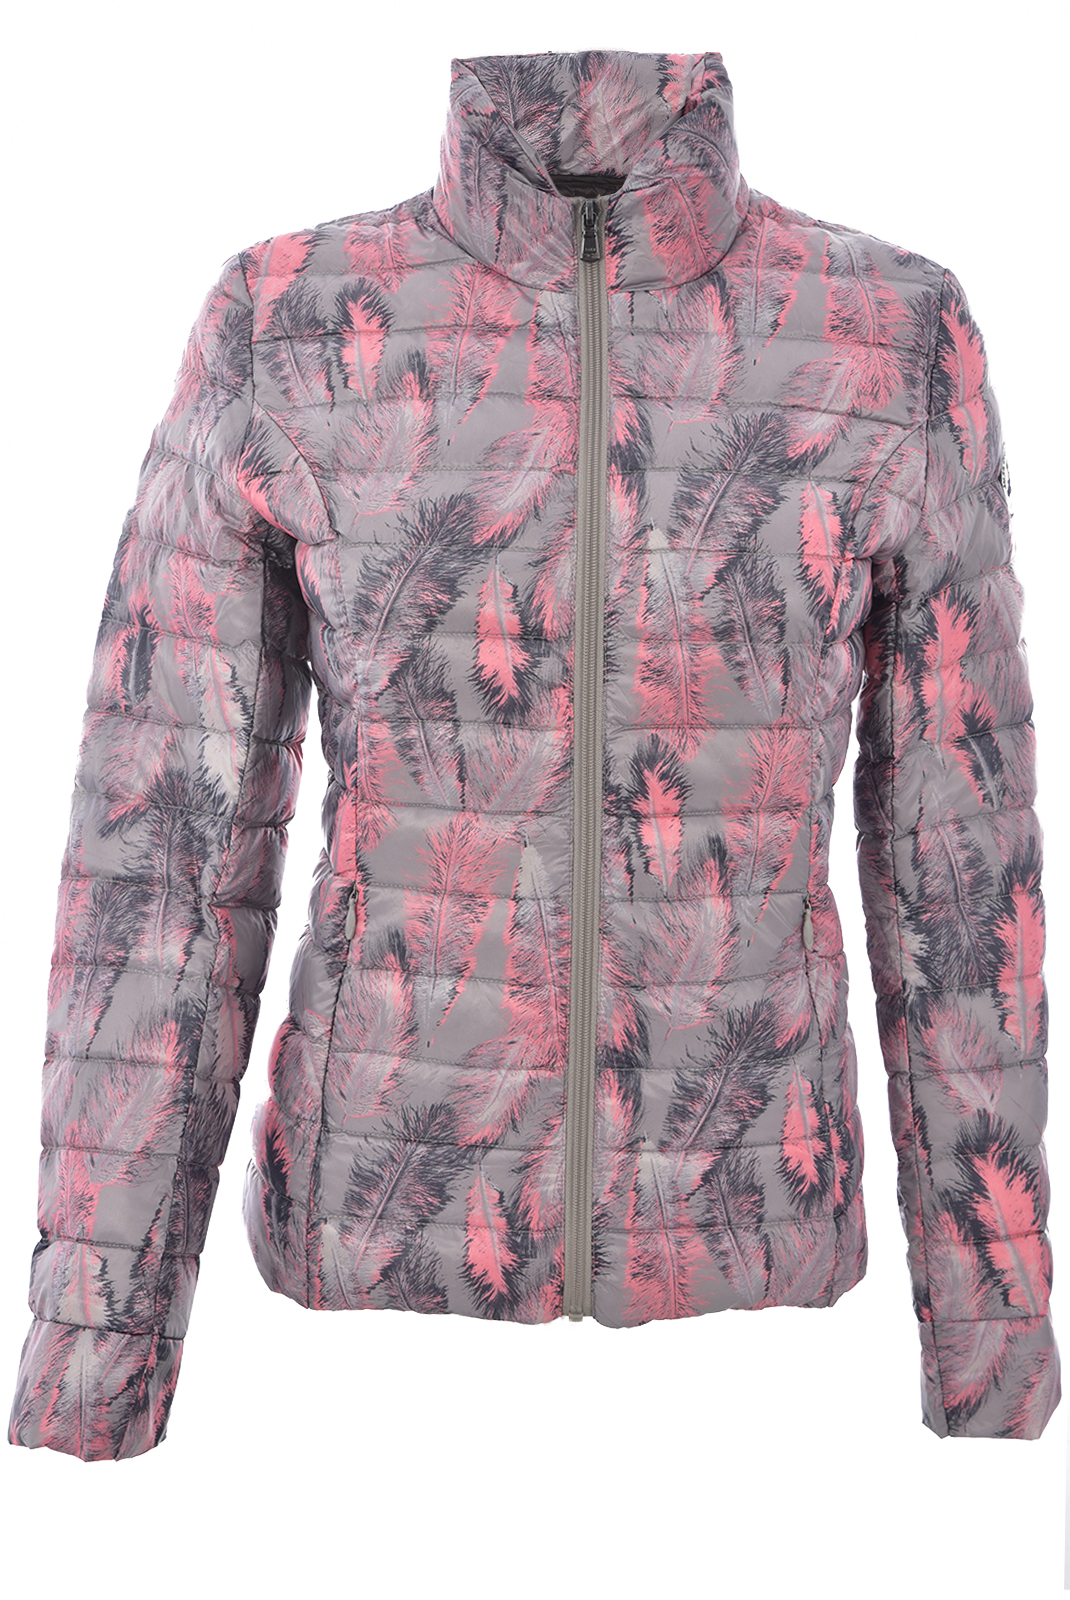 Blouson  Just over the top CHA 958 PLUMES ROSE